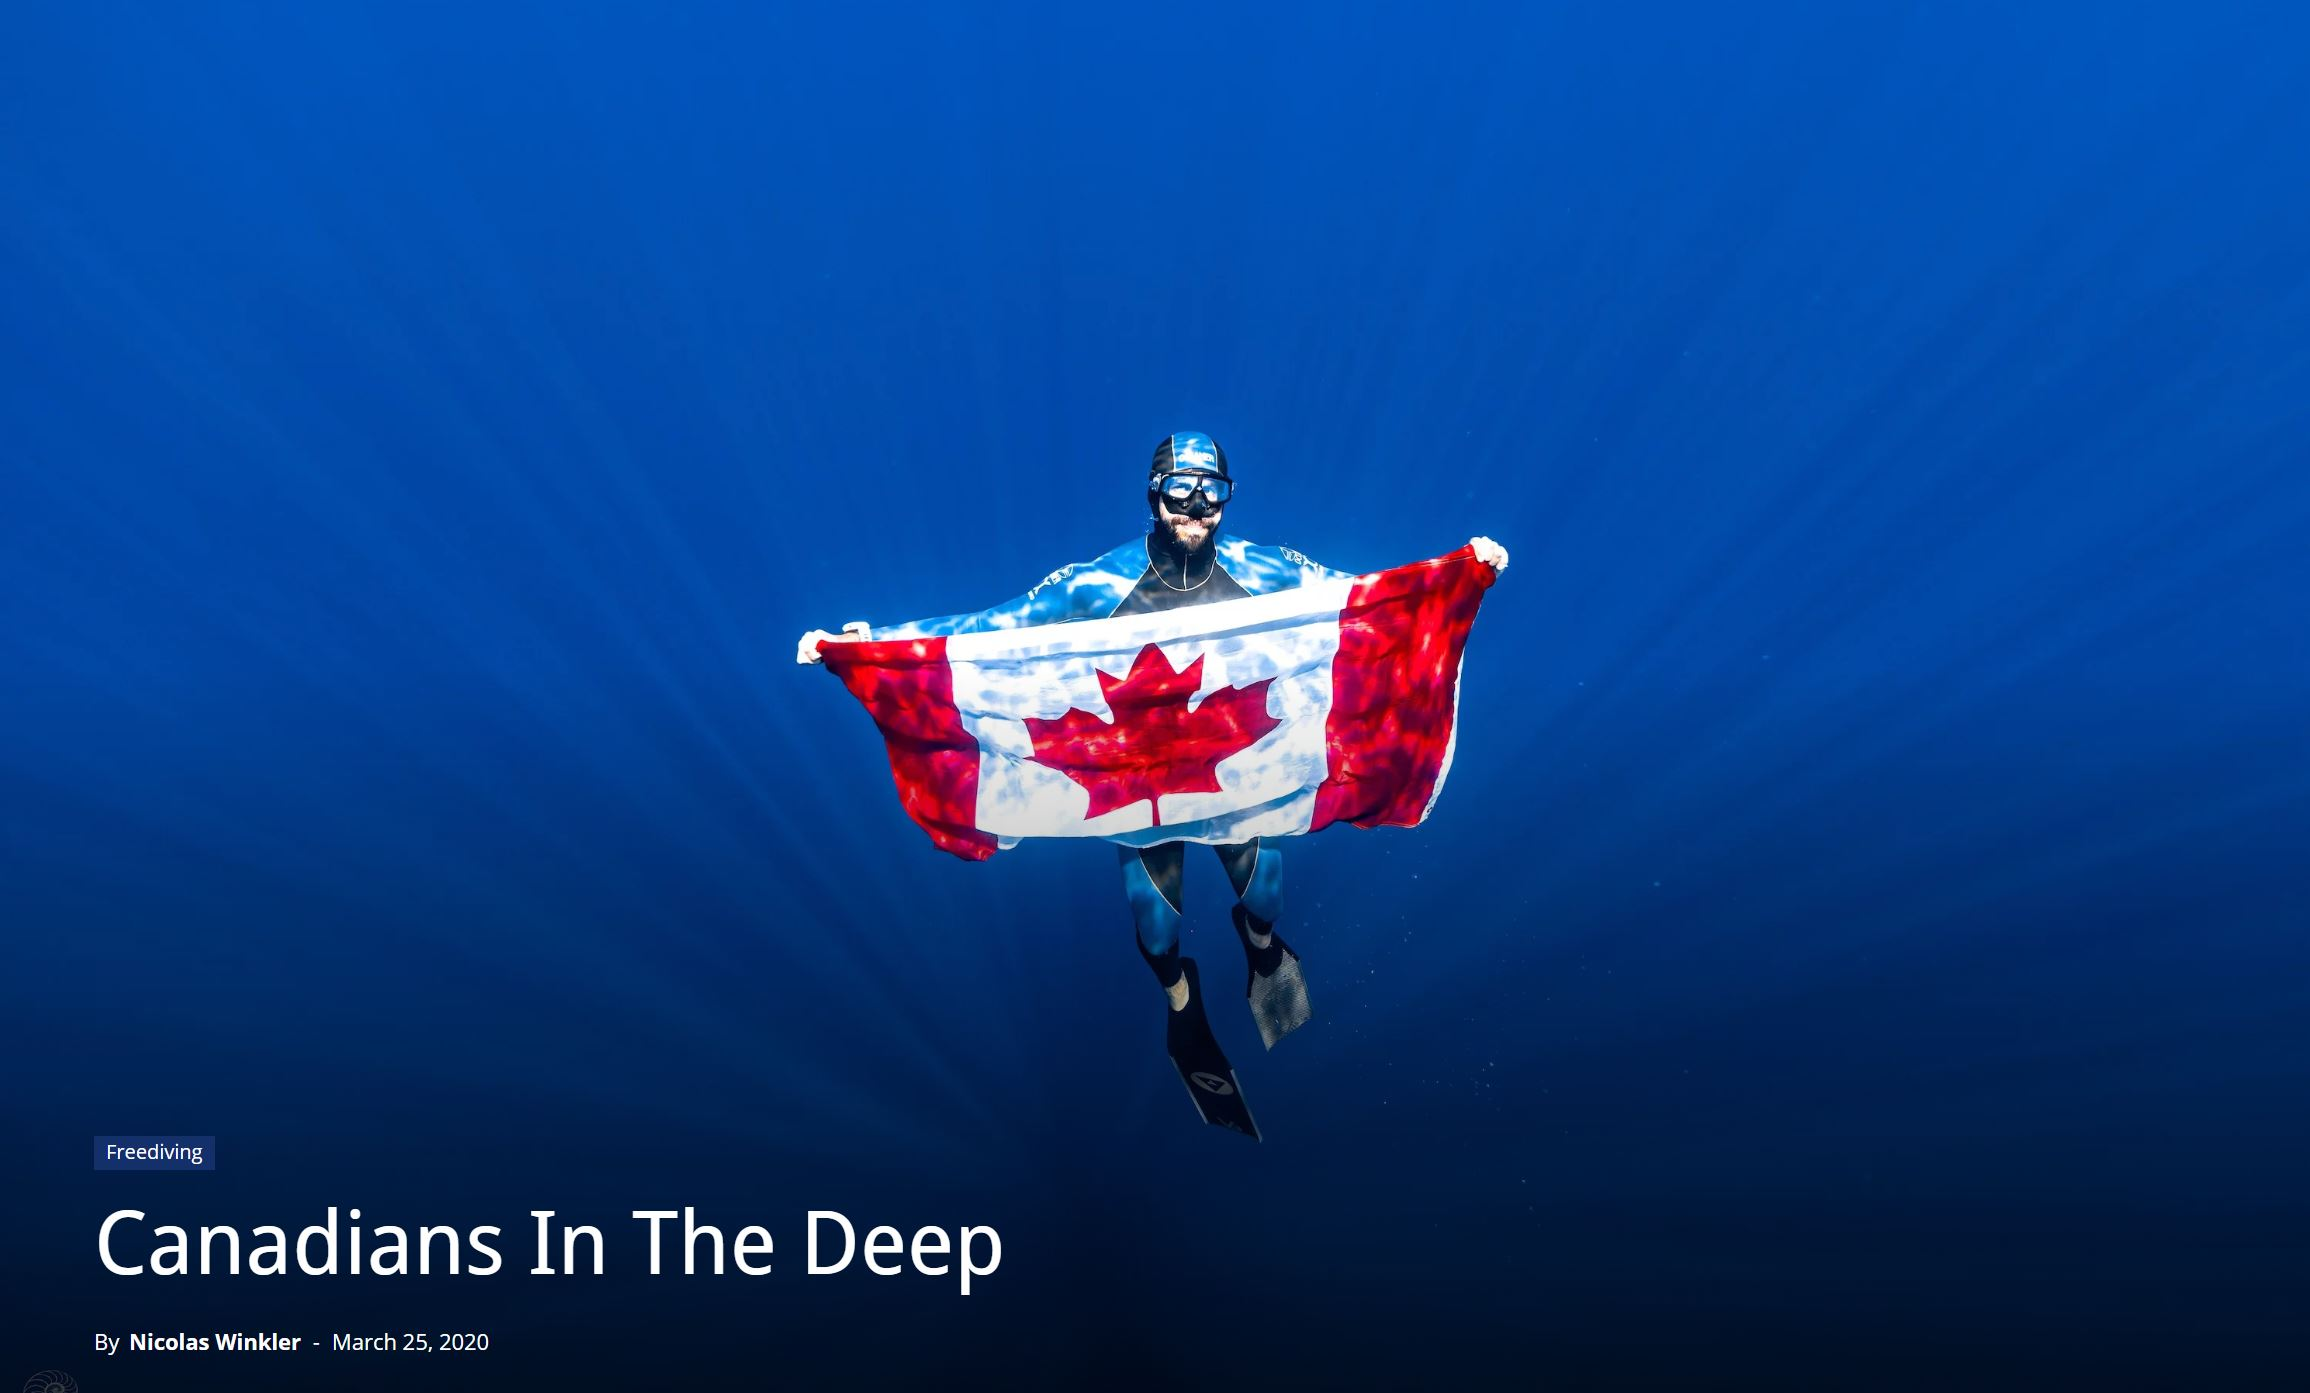 inthedeep